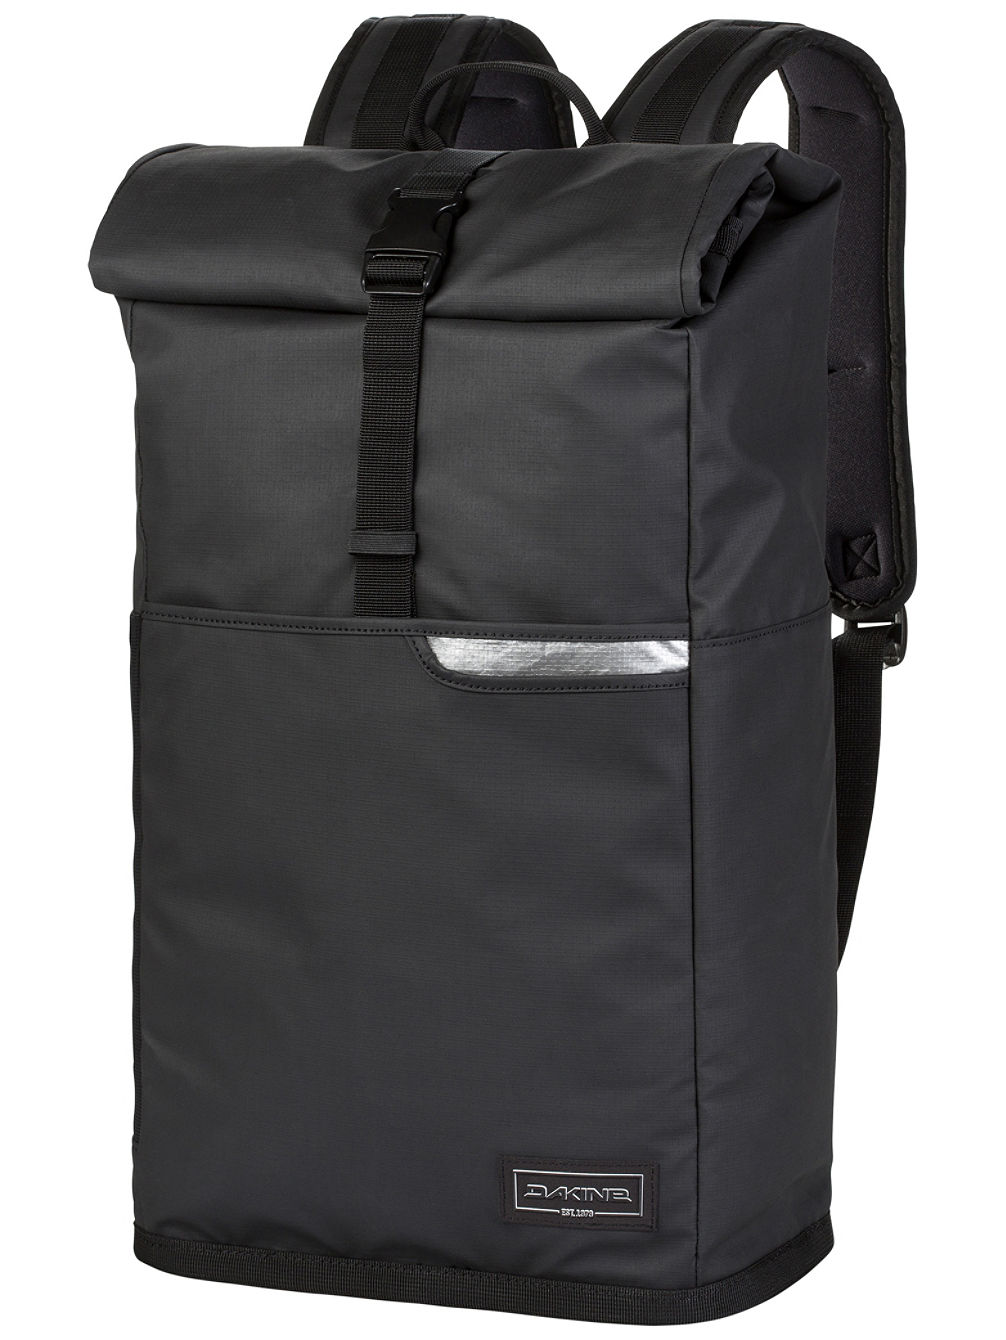 Section Roll Top Wet/Dry 28L Sac à Dos